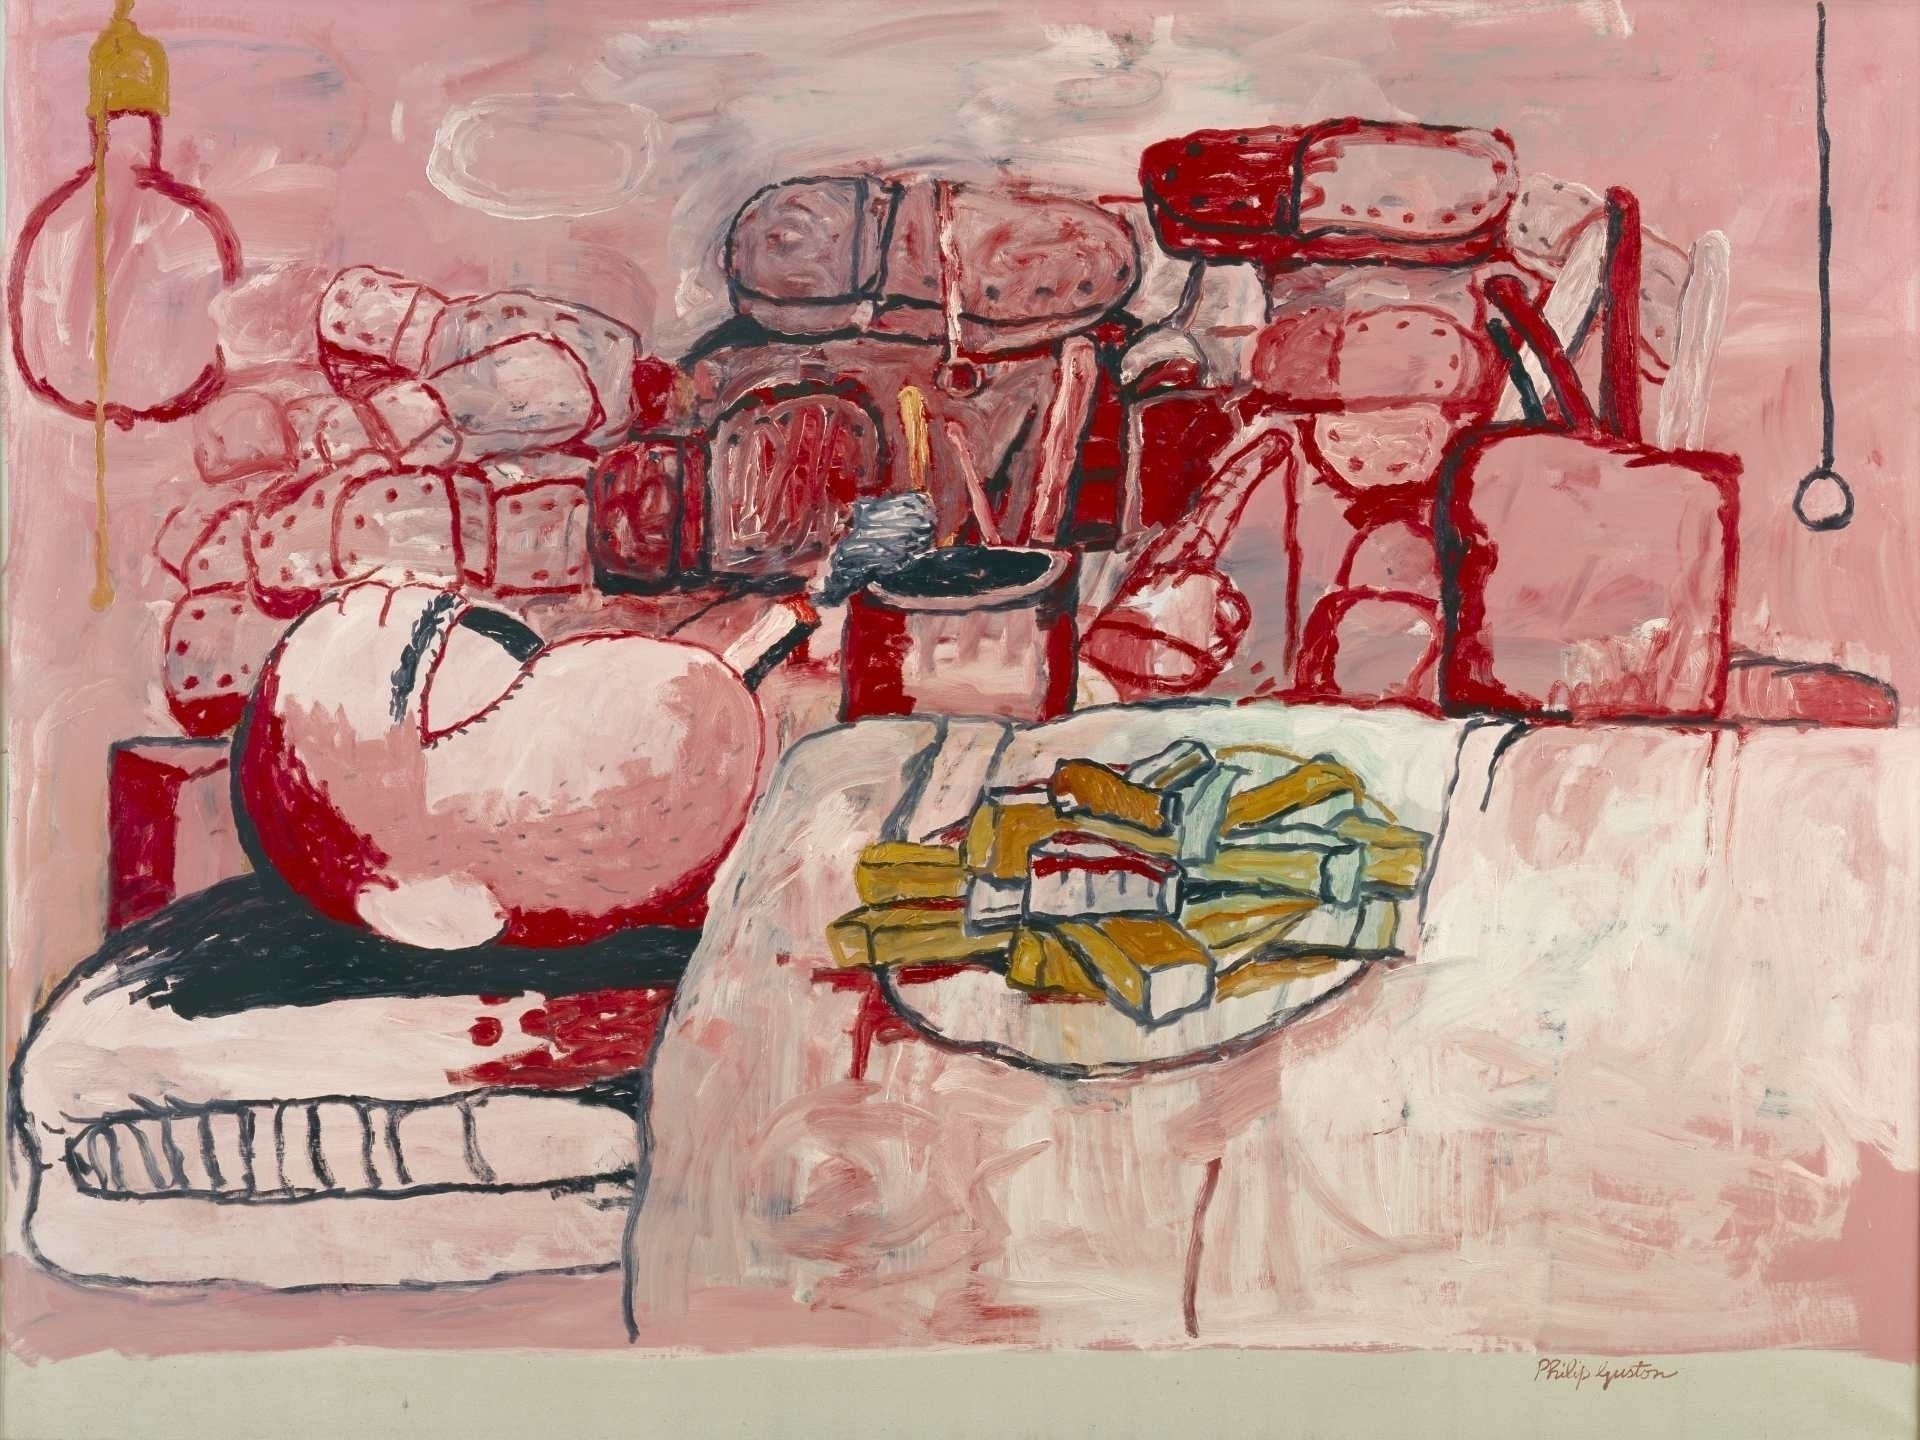 Guston Painting Smoking Eating